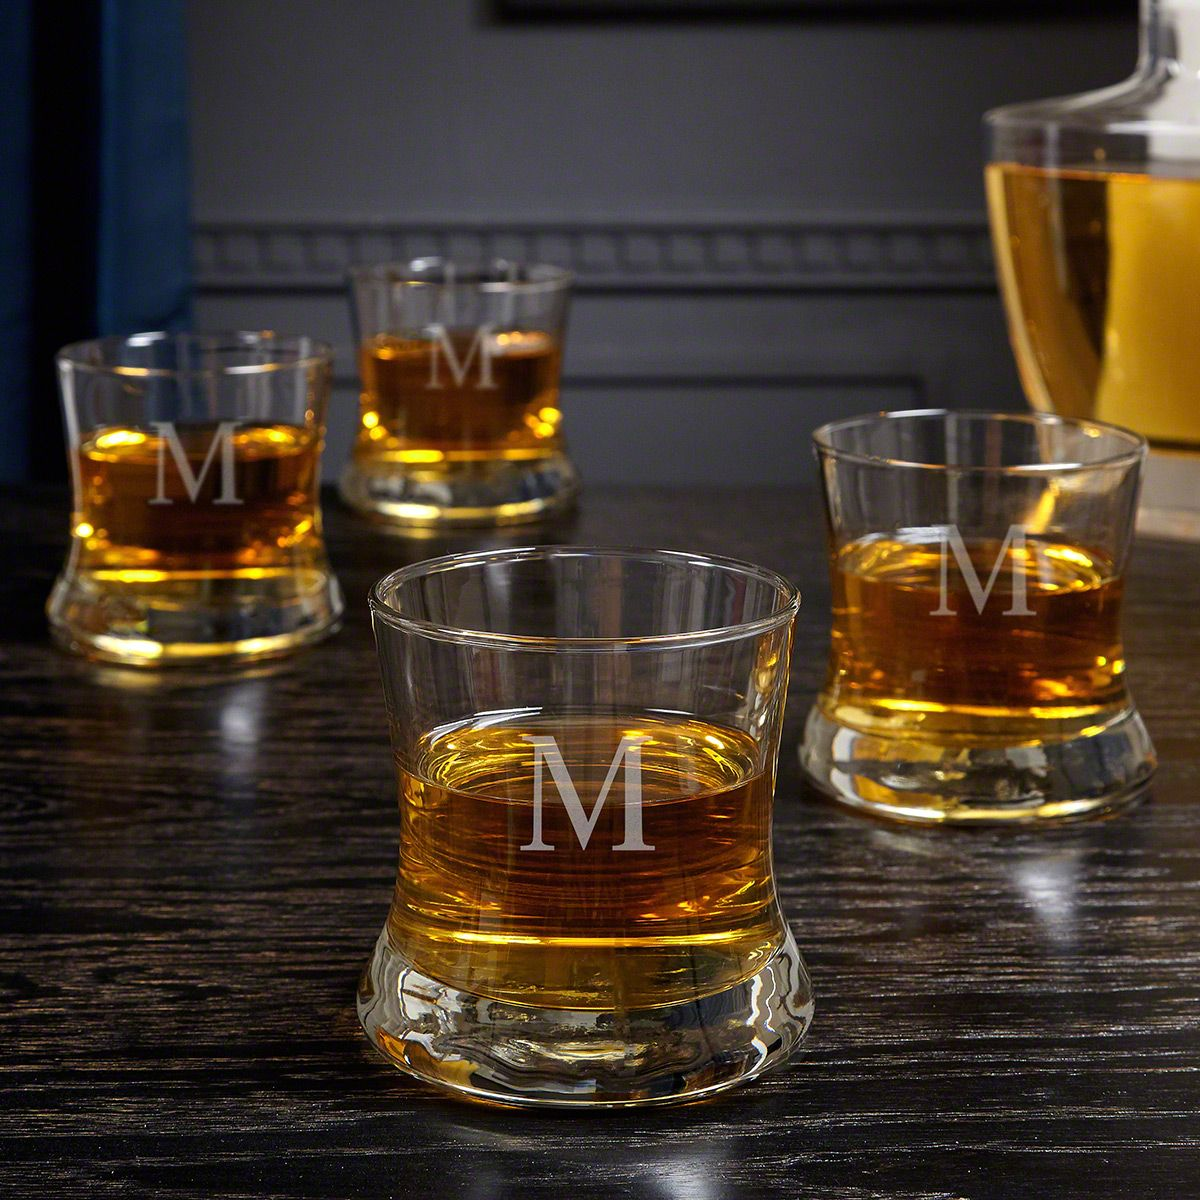 Clooney Personalized Bourbon Glasses, Set of 4